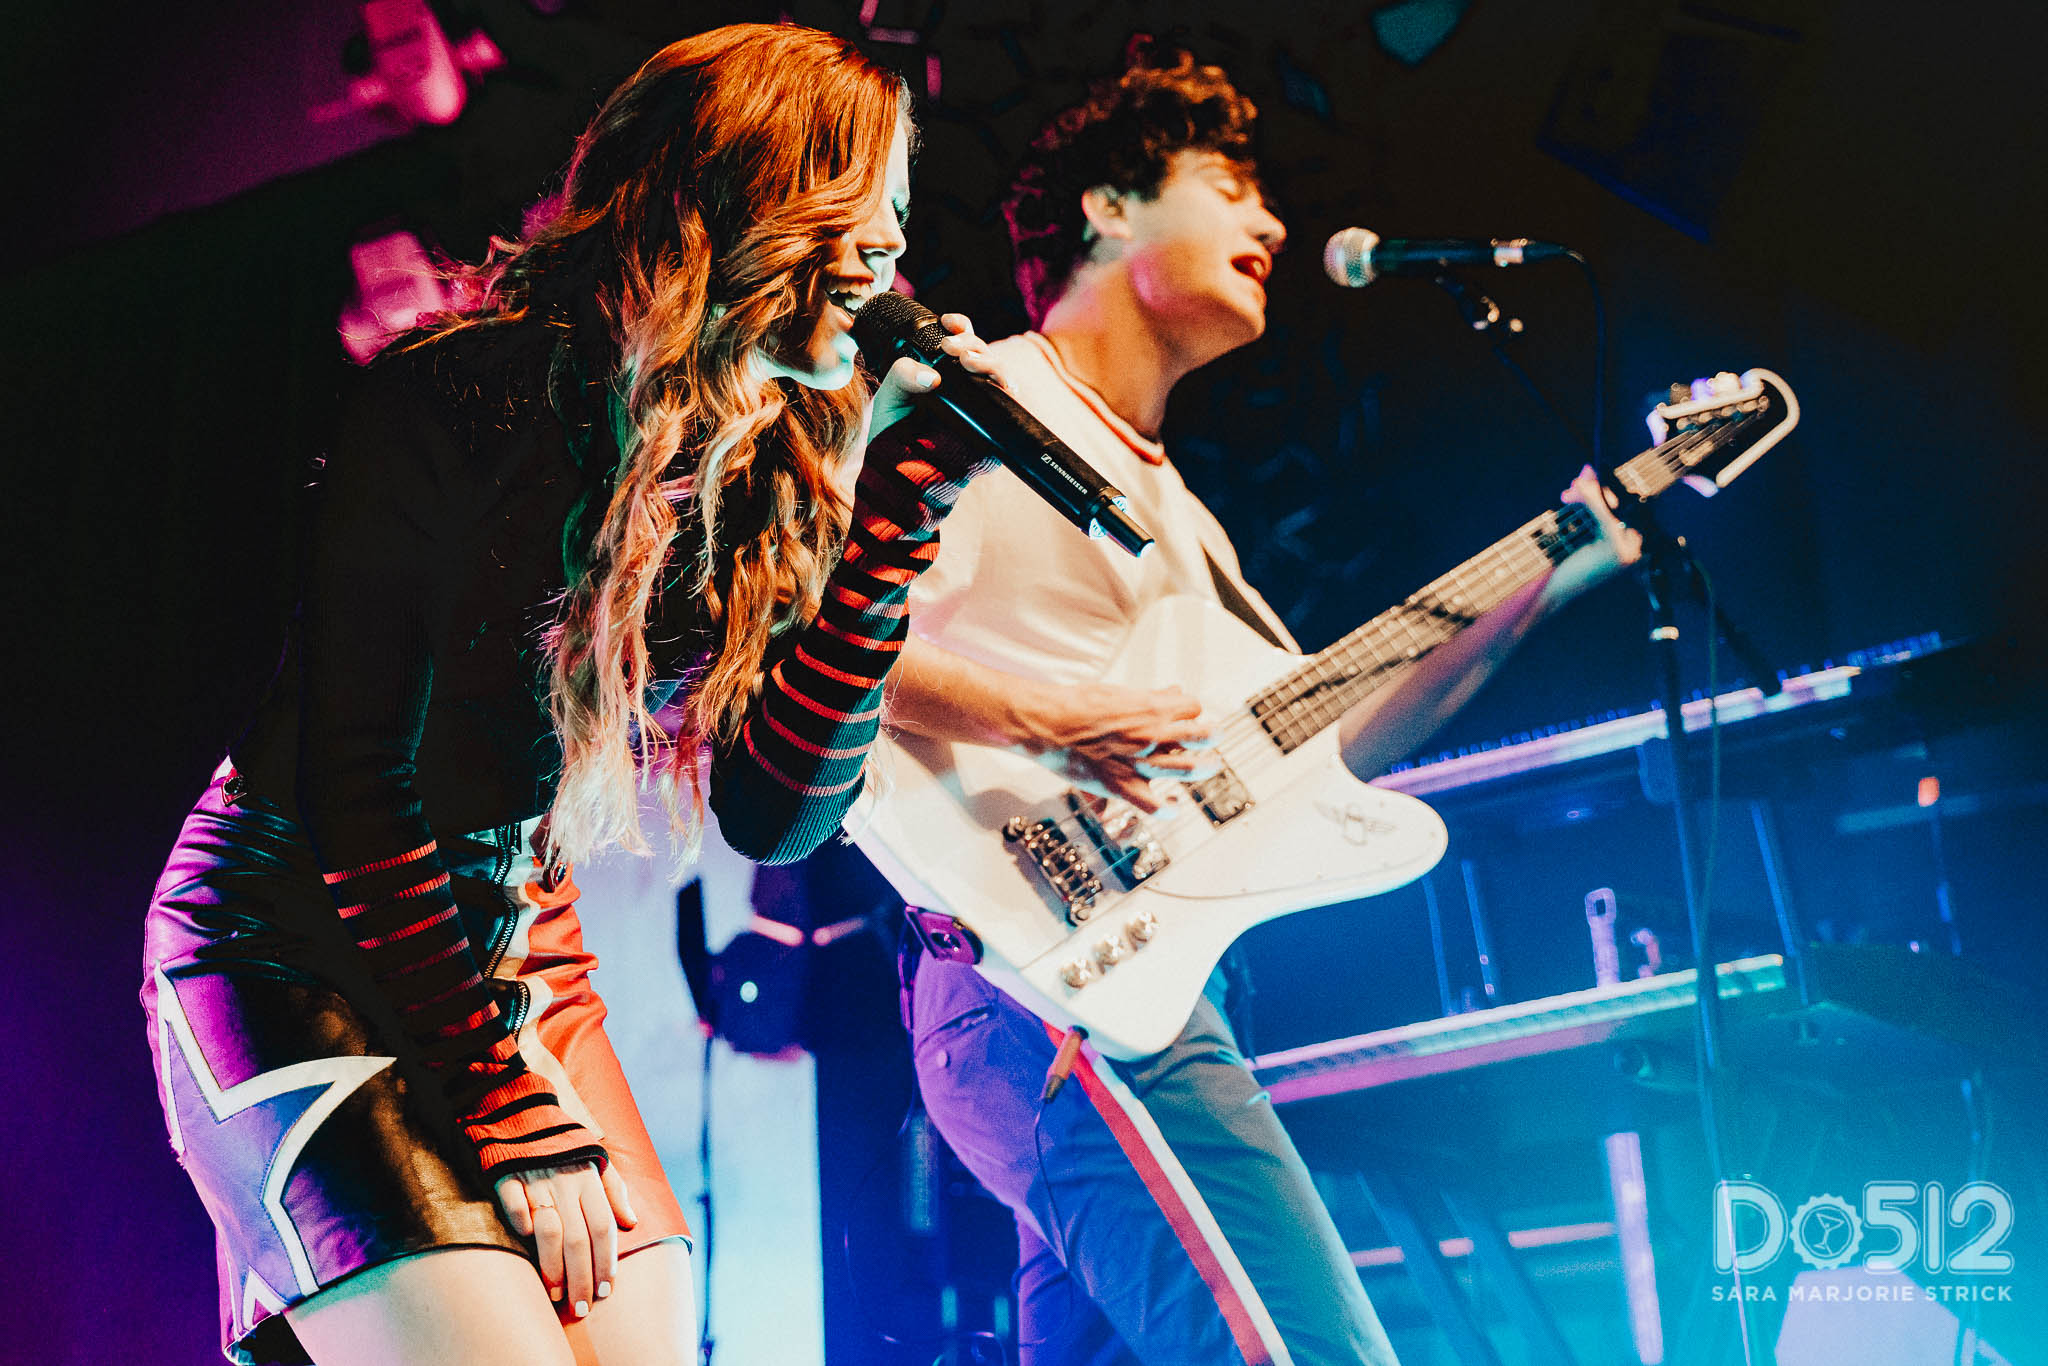 sarastrick_echosmith_do512_emos_05062018-11.jpg